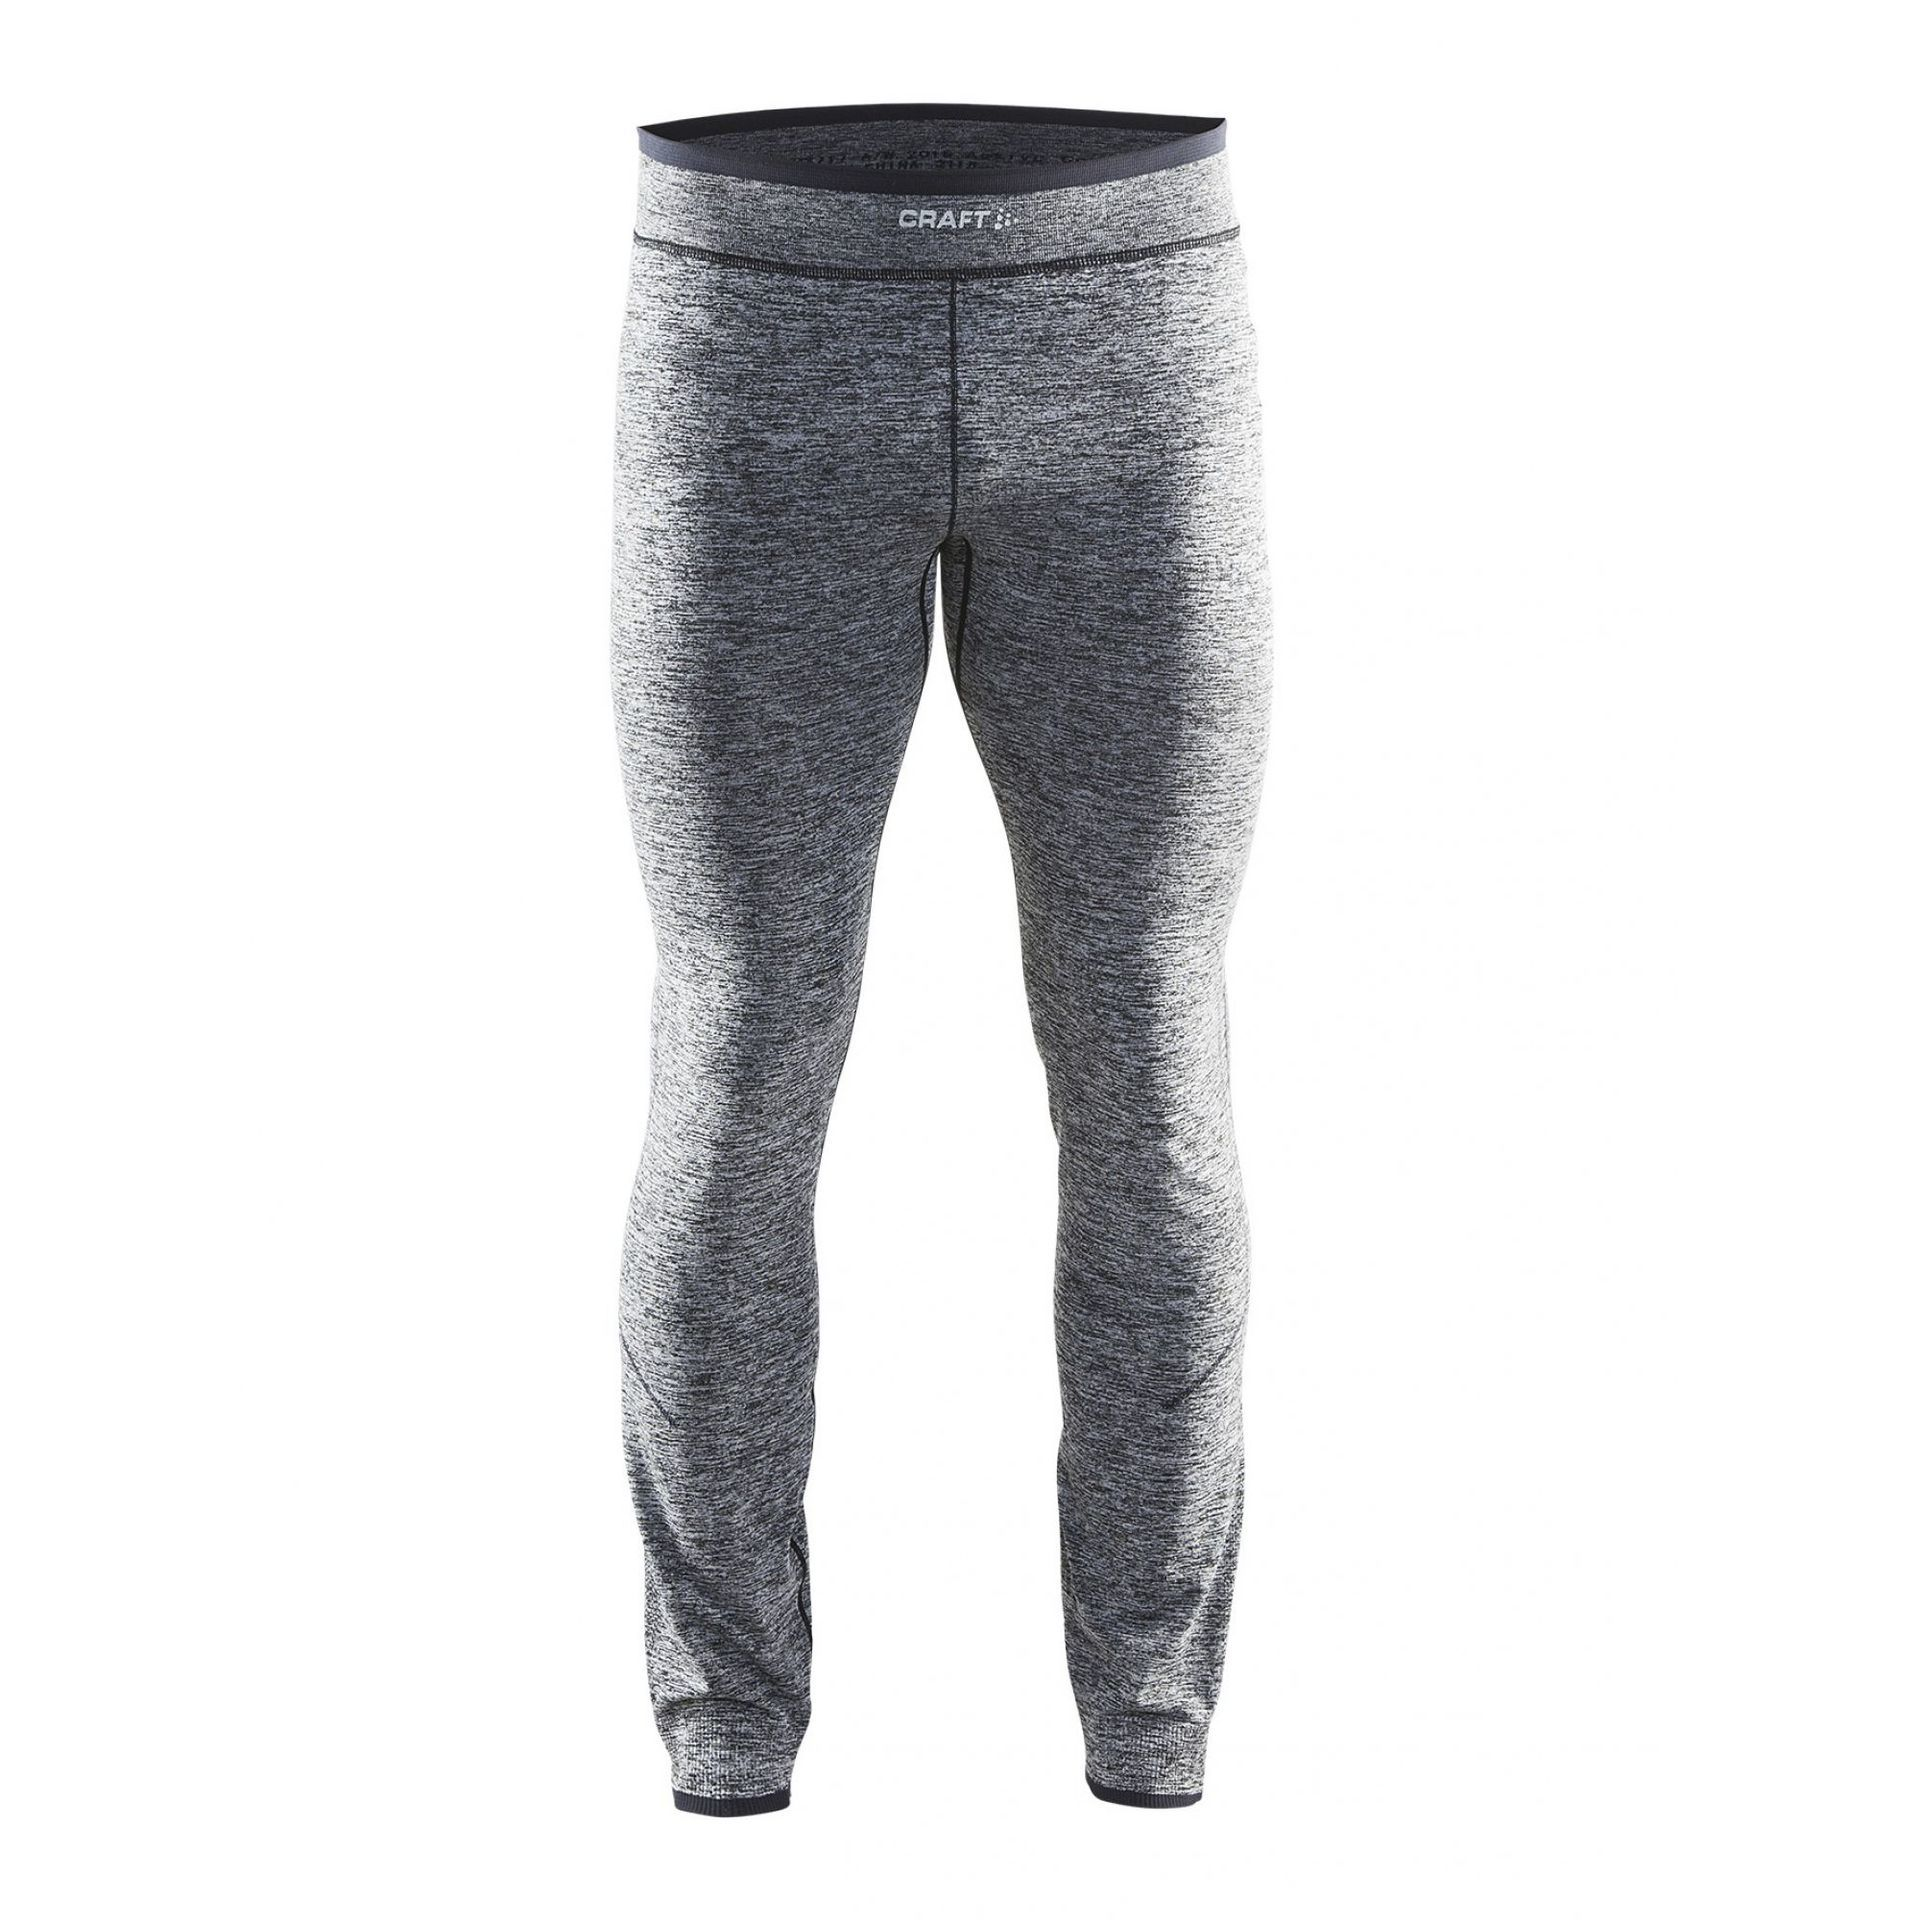 SPODNIE CRAFT ACTIVE COMFORT PANTS M 999 1